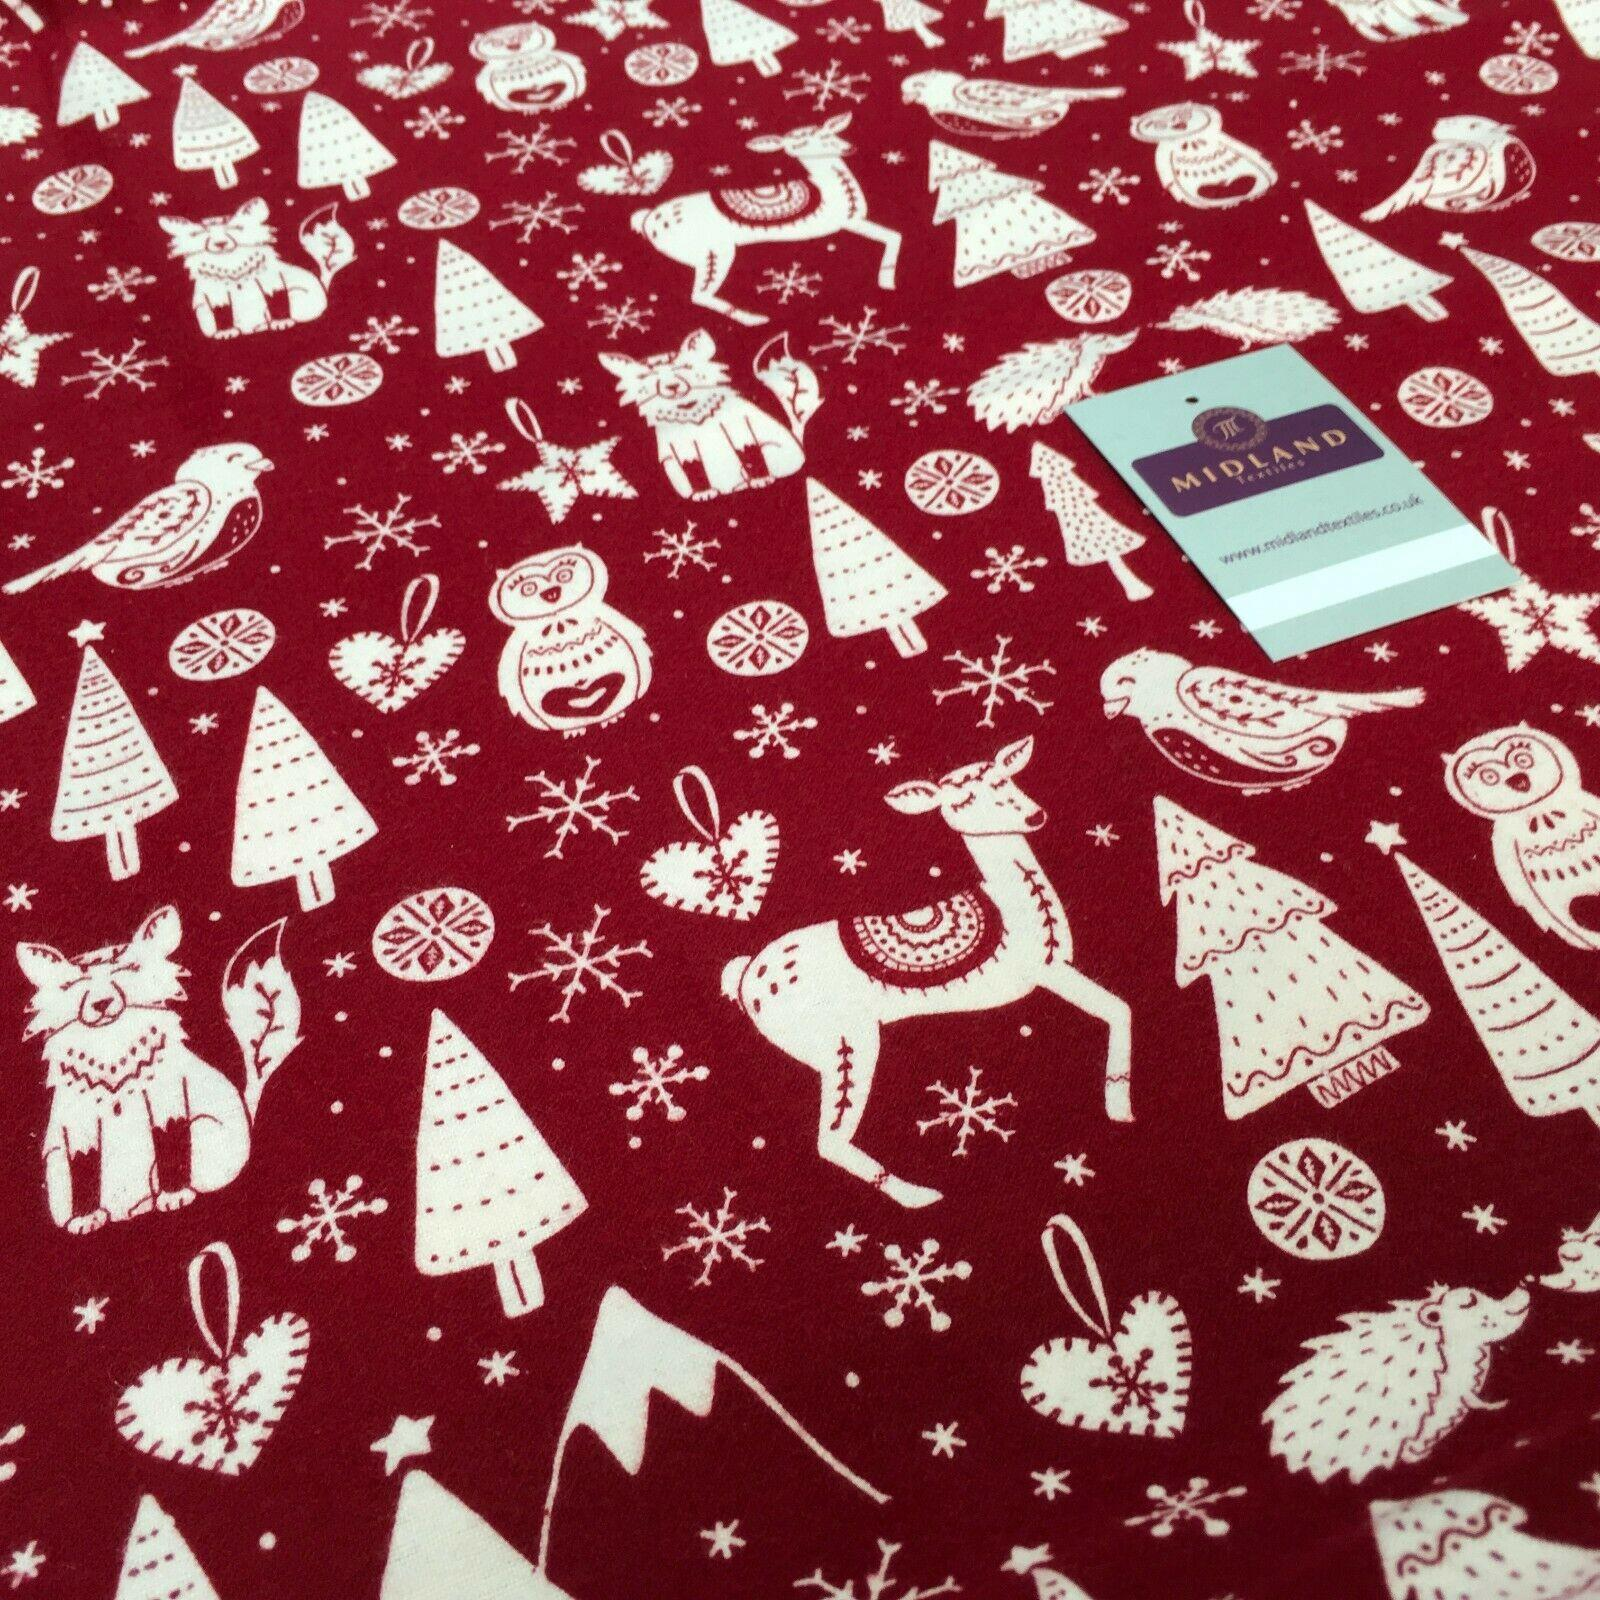 Red Christmas Cotton Winceyette Soft Brushed Flannel Fabric 150cm MK1224-2